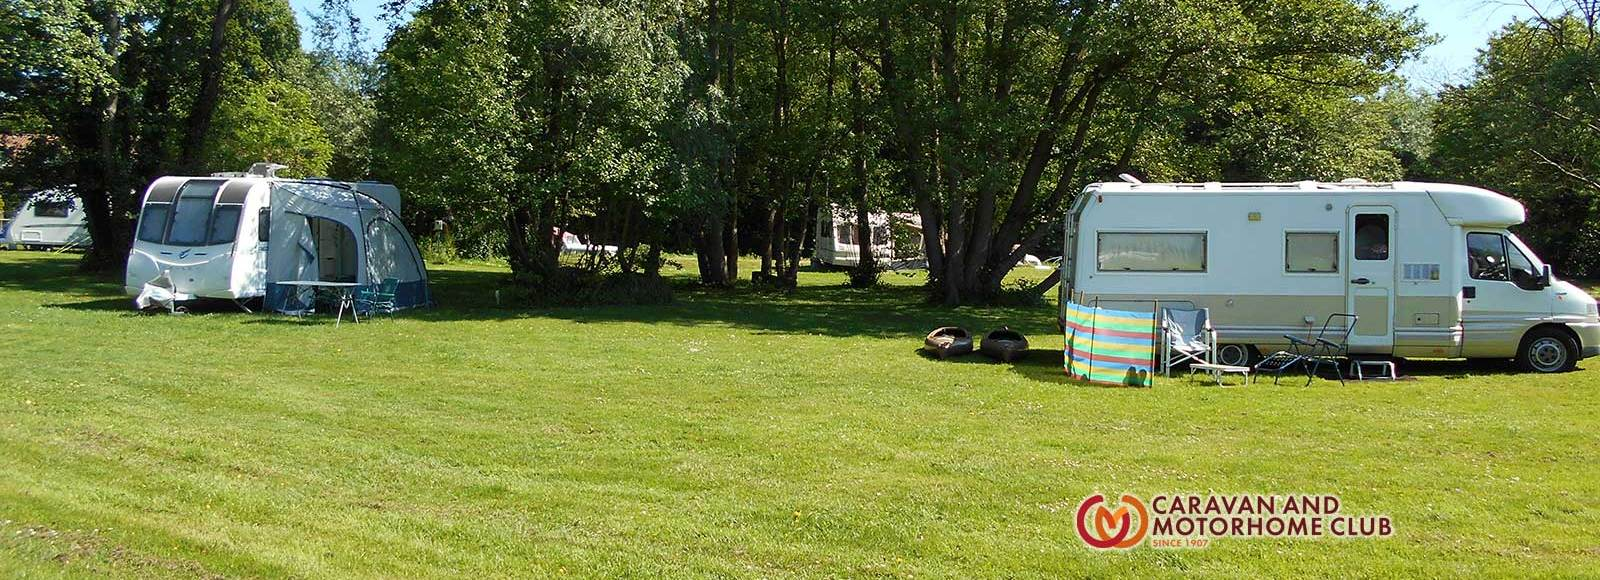 caravan & camping site Geldeston Beccles Suffolk